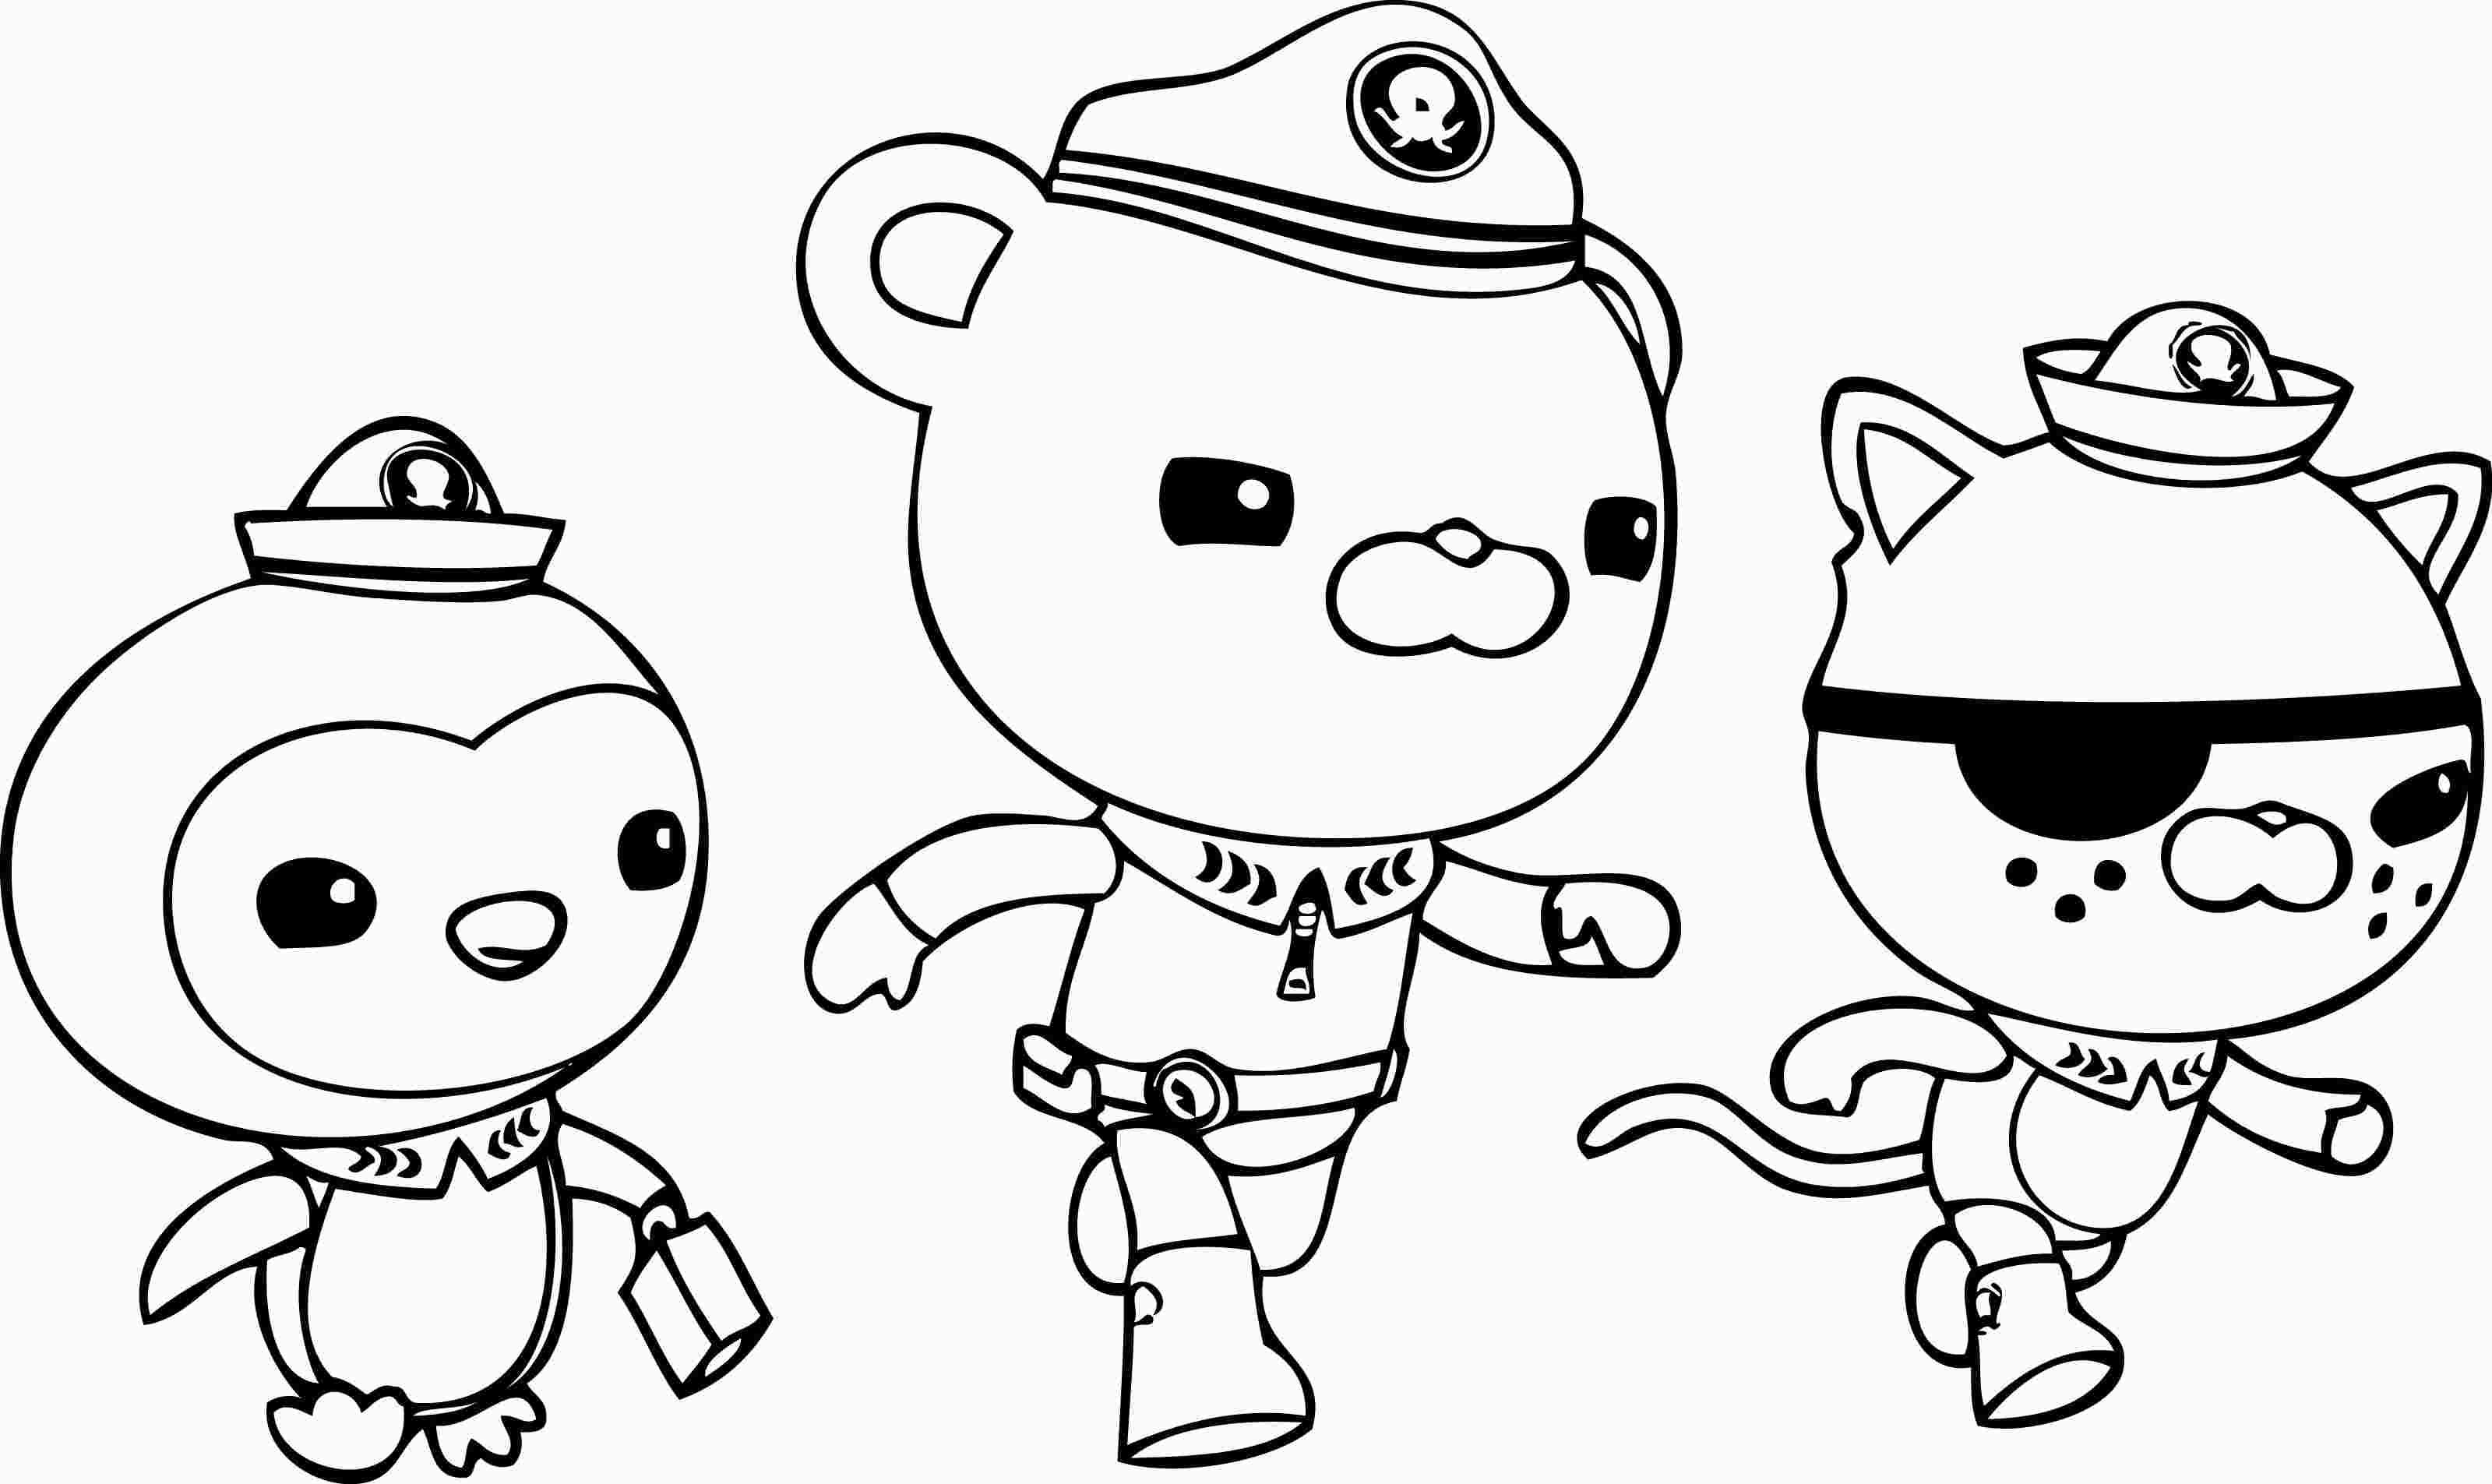 Octonauts Printable Coloring Pages Birthday Coloring Pages Cartoon Coloring Pages Pokemon Coloring Pages